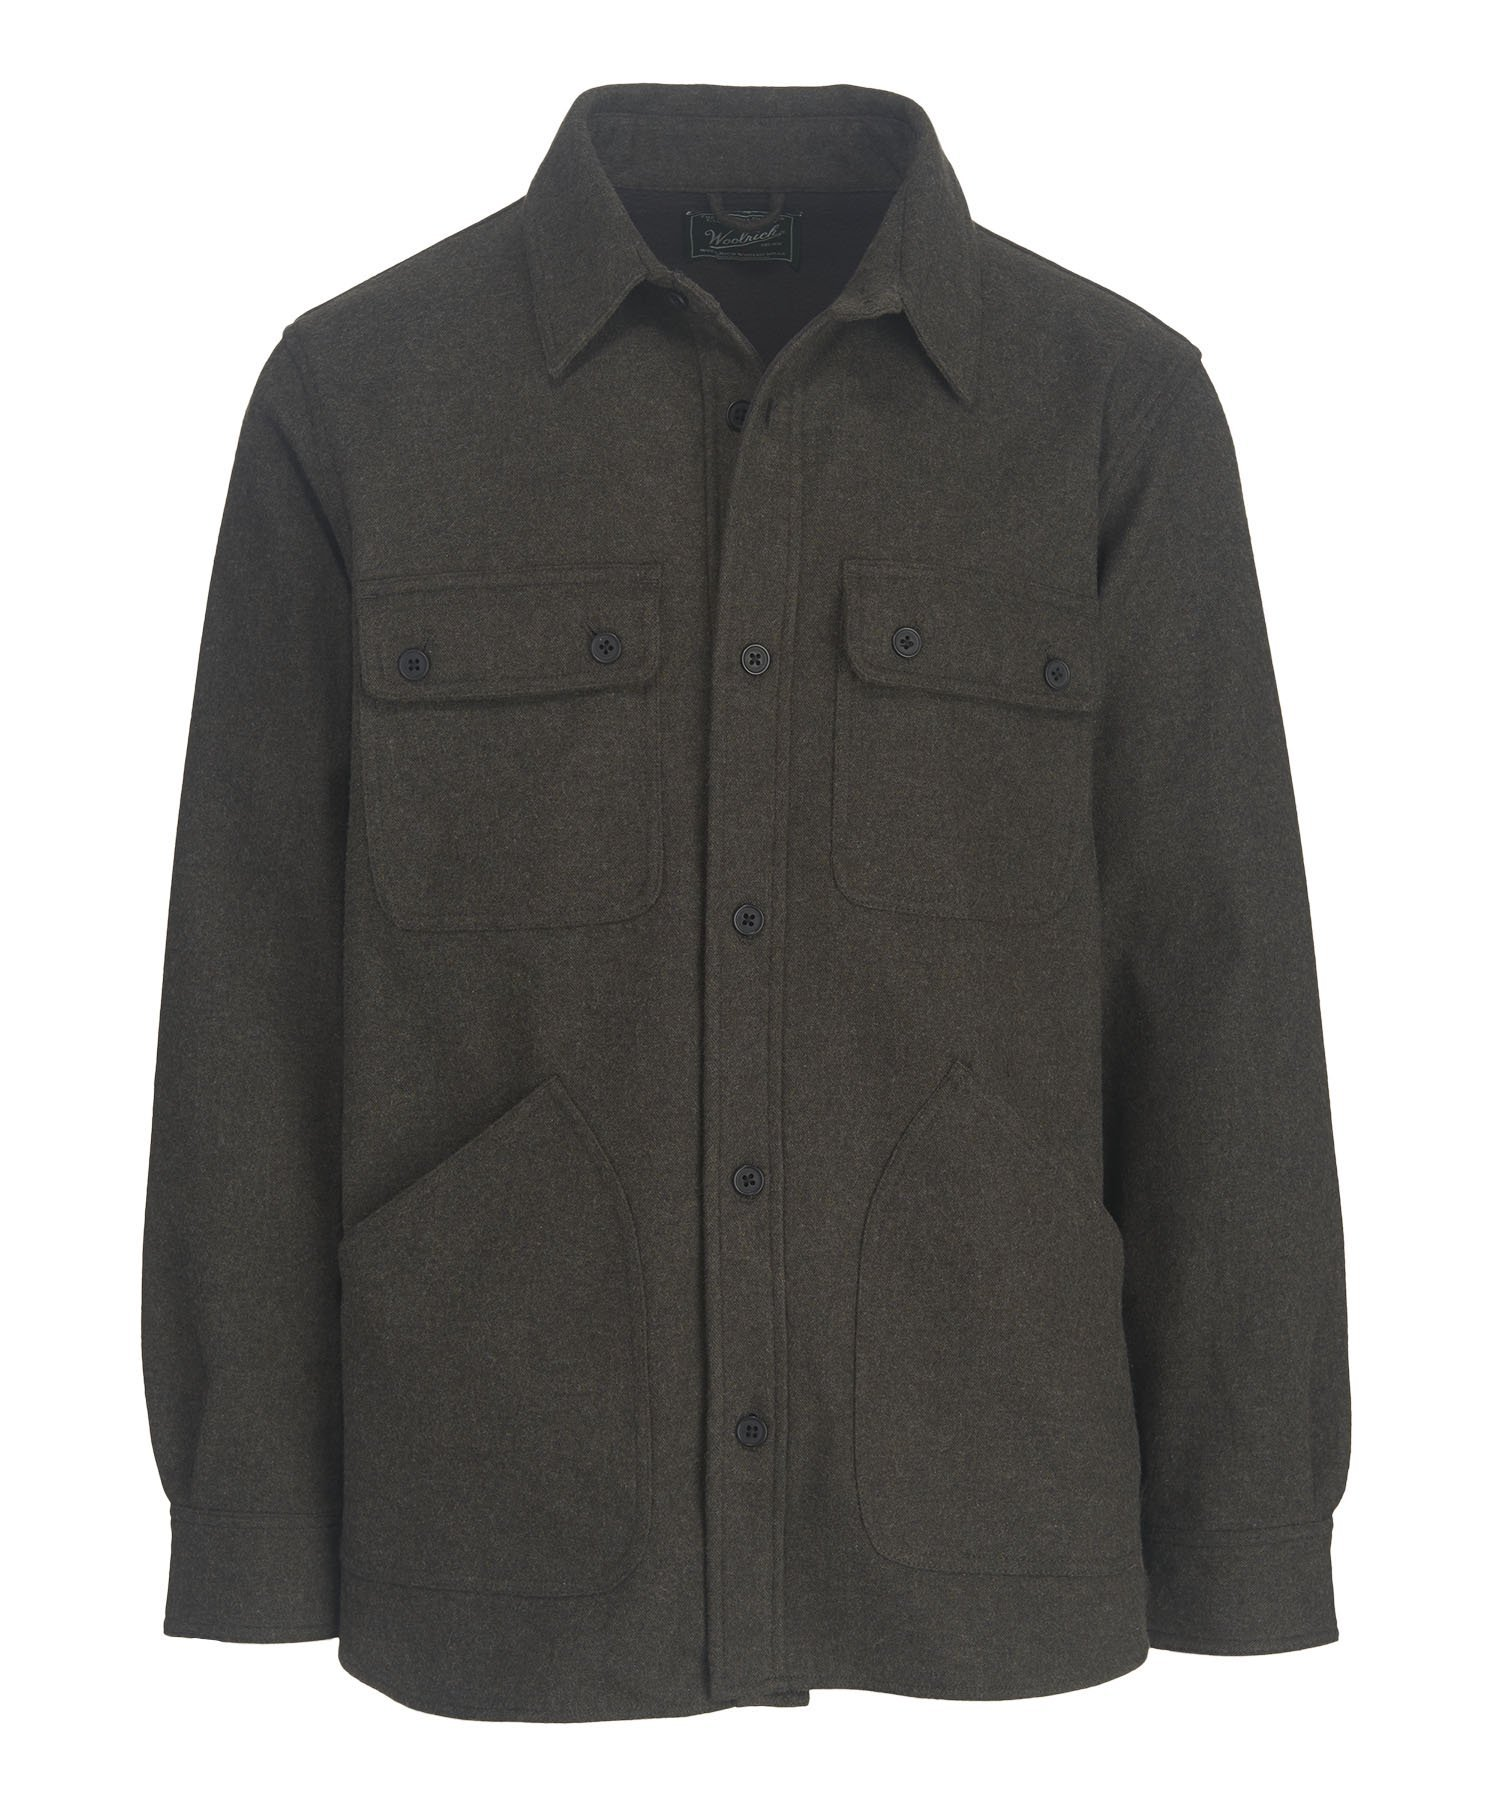 Woolrich Men's West Ridge Shirt Jac, Black Heather, XX-Large